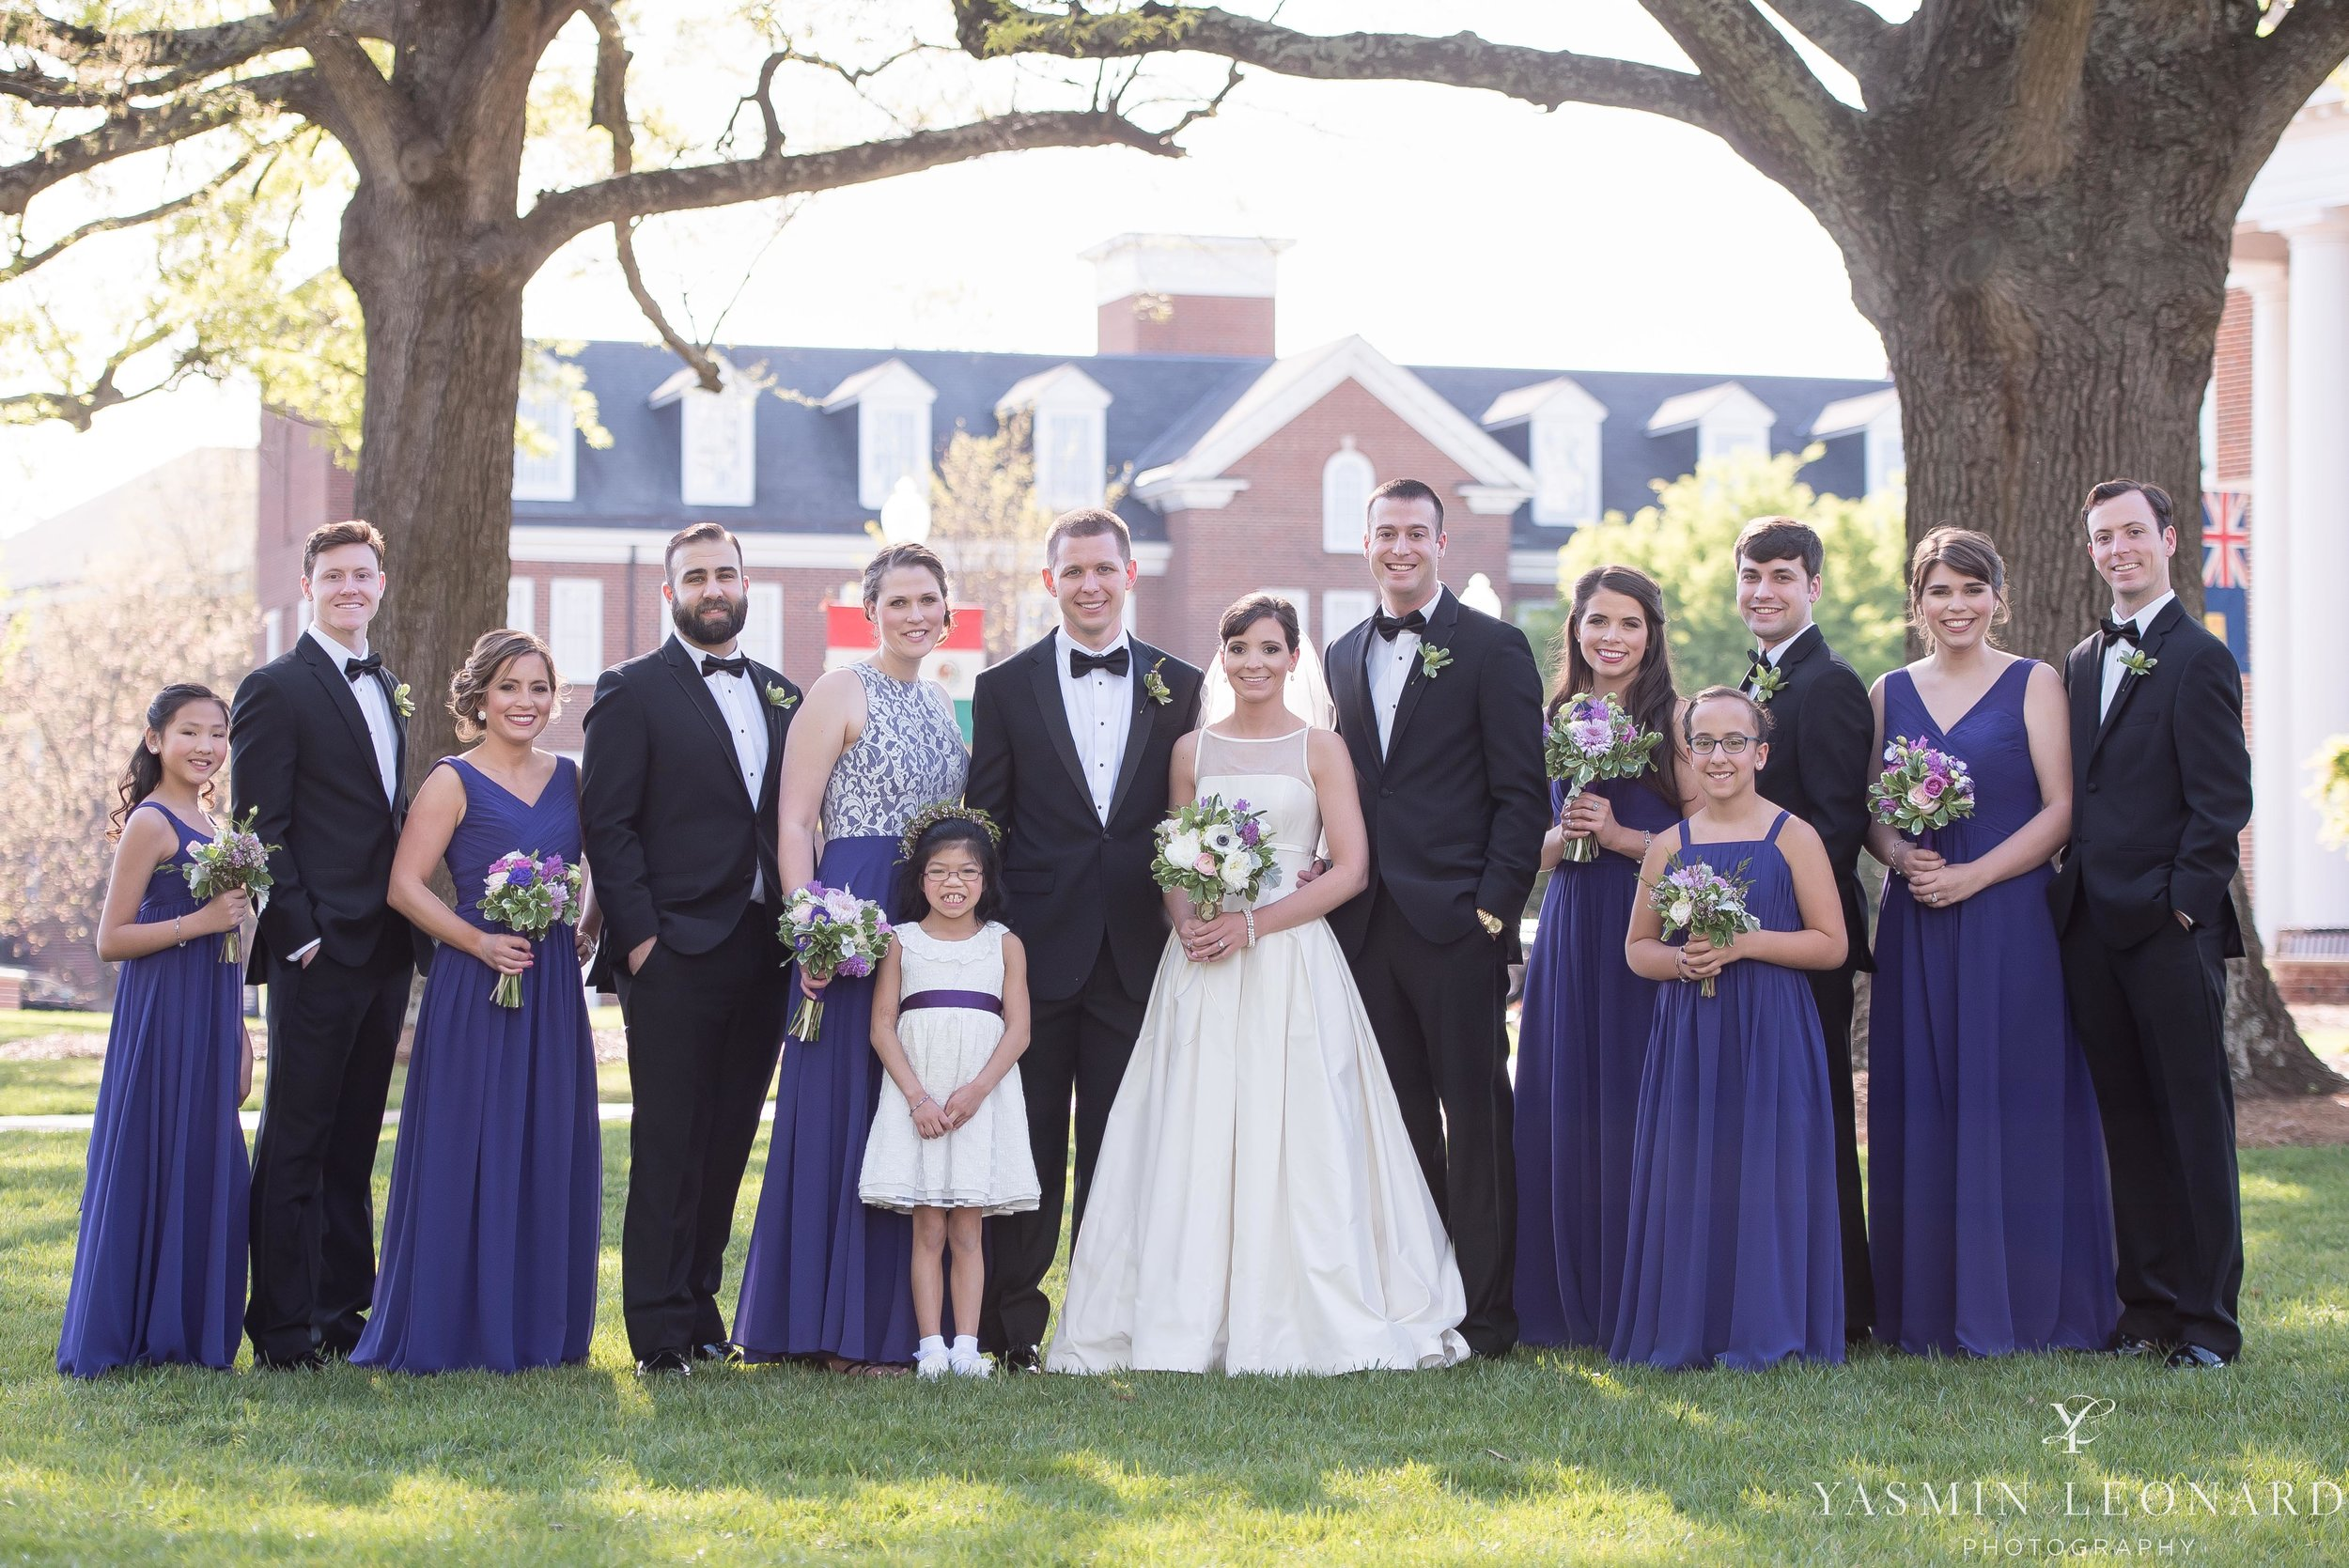 JH ADAMS INN - HIGH POINT UNIVERSITY CHAPEL WEDDING - HPU CHAPEL - HIGH POINT WEDDINGS - NC WEDDING PHOTOGRAPHER - YASMIN LEONARD PHOTOGRAPHY - HIGH POINT NC - HIGH POINT WEDDINGS -45.jpg